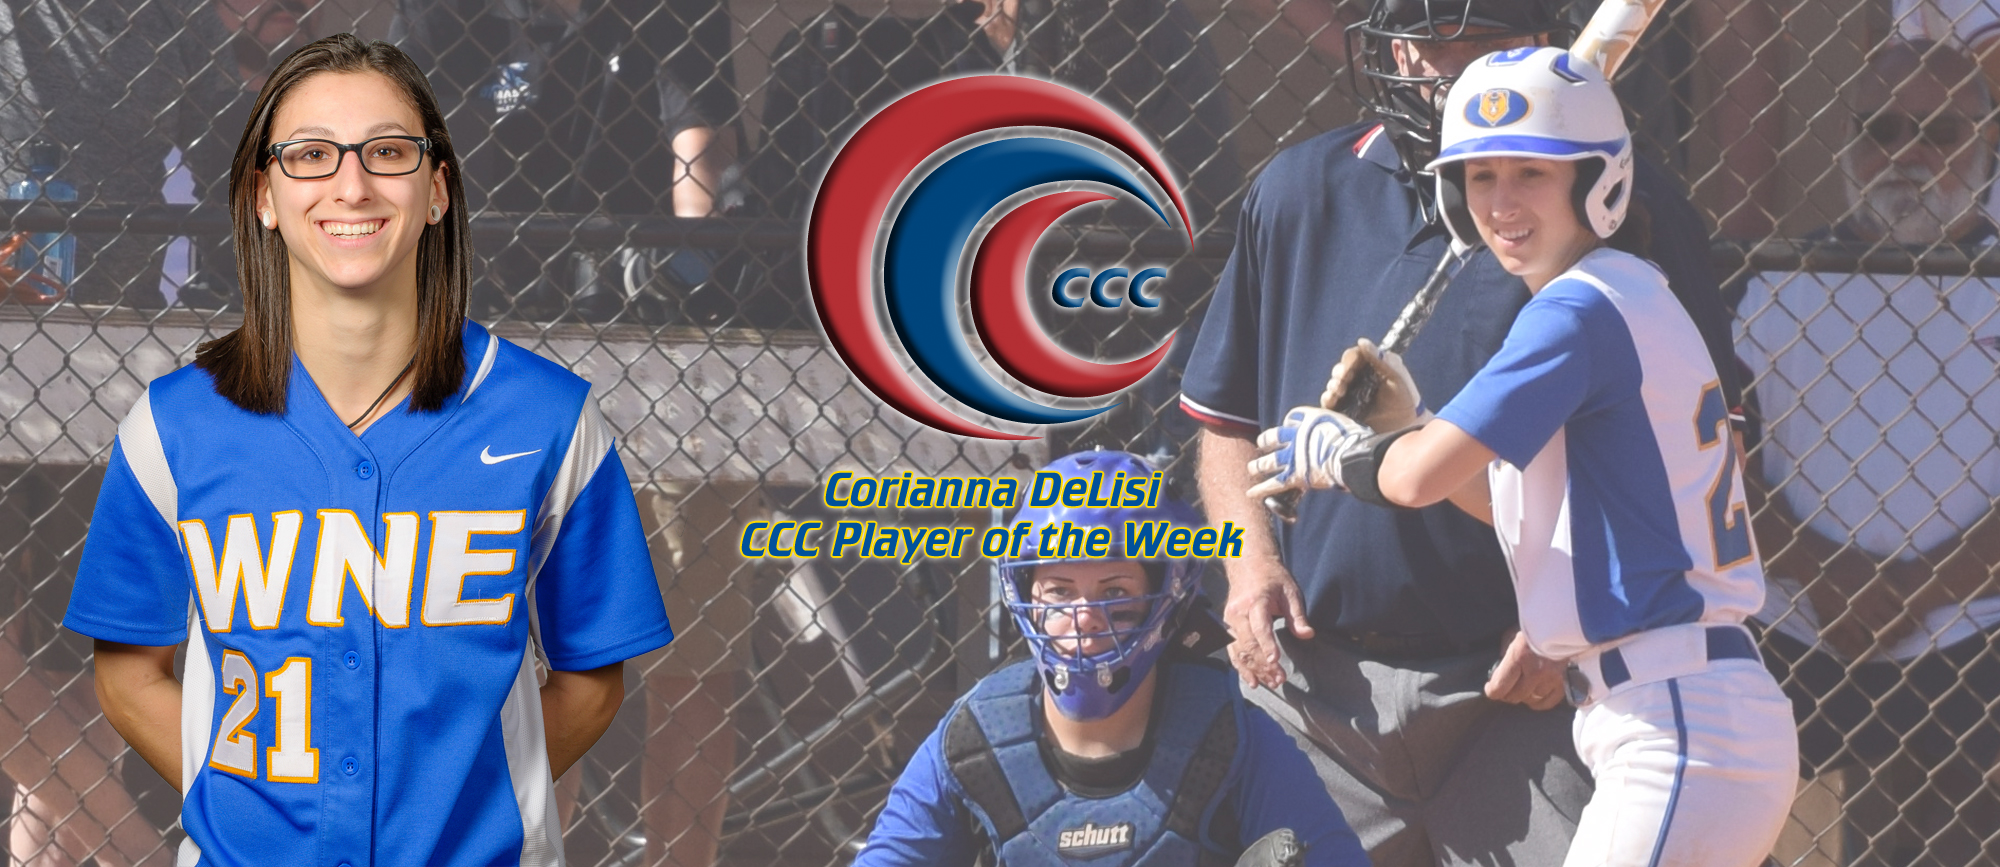 Corianna DeLisi Earns CCC Player of the Week Honors